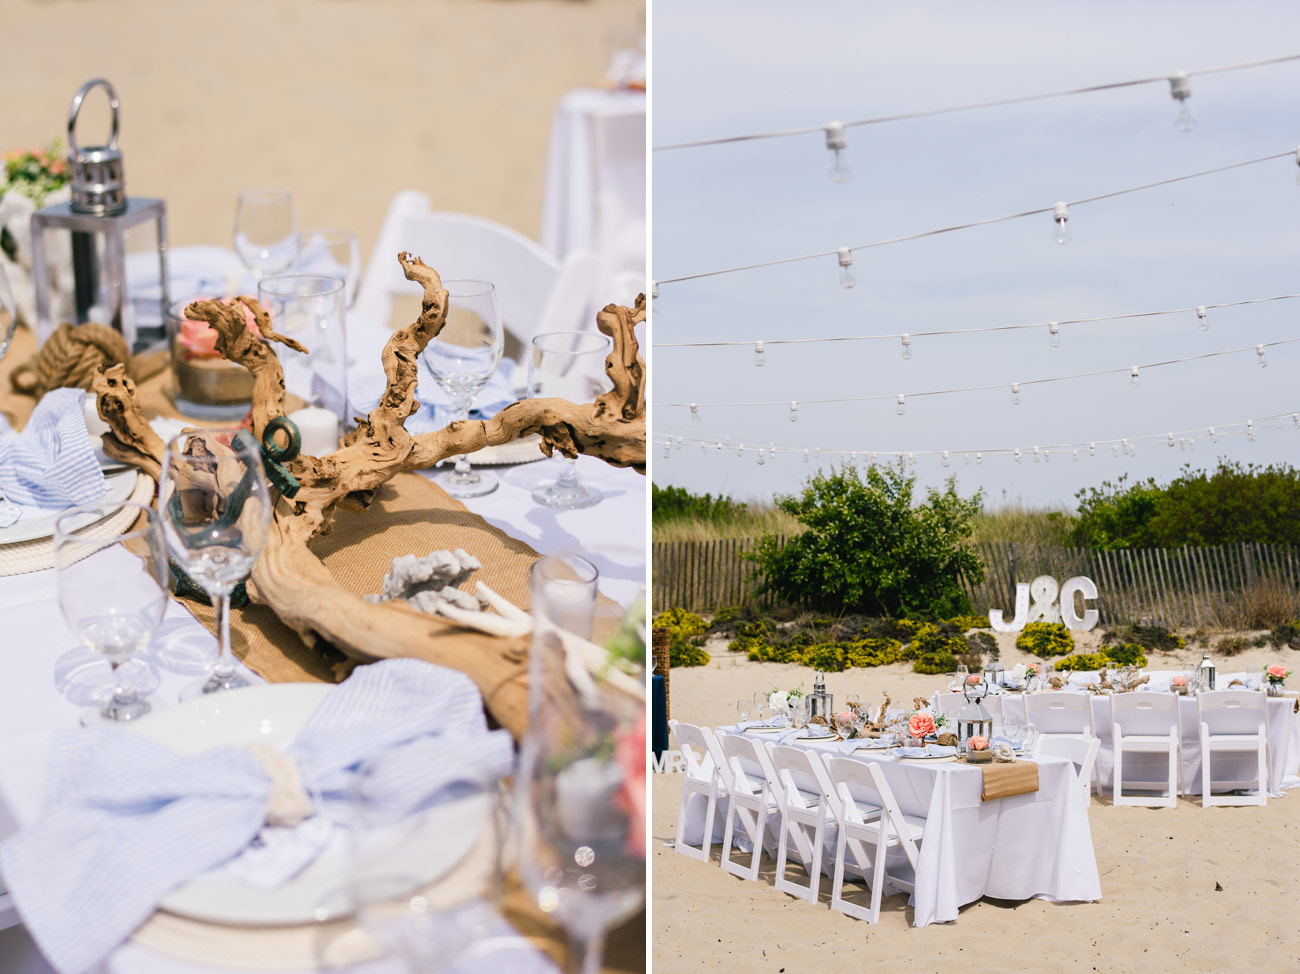 cute beach details of table spread with nautical napkins and sea life